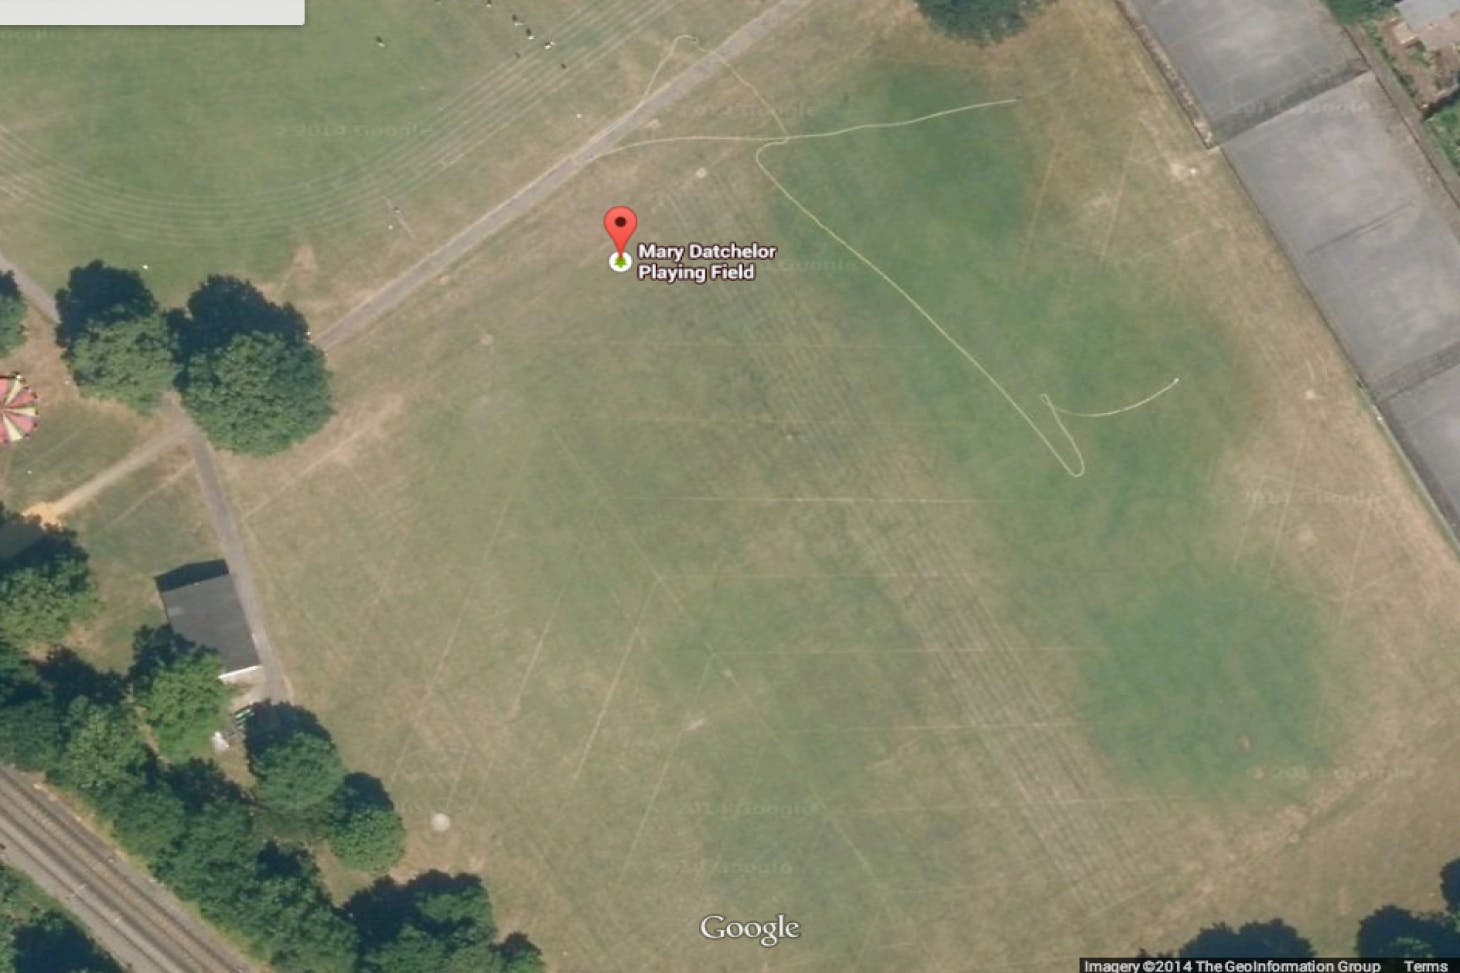 Mary Datchelor Playing Fields 11 a side | Grass football pitch